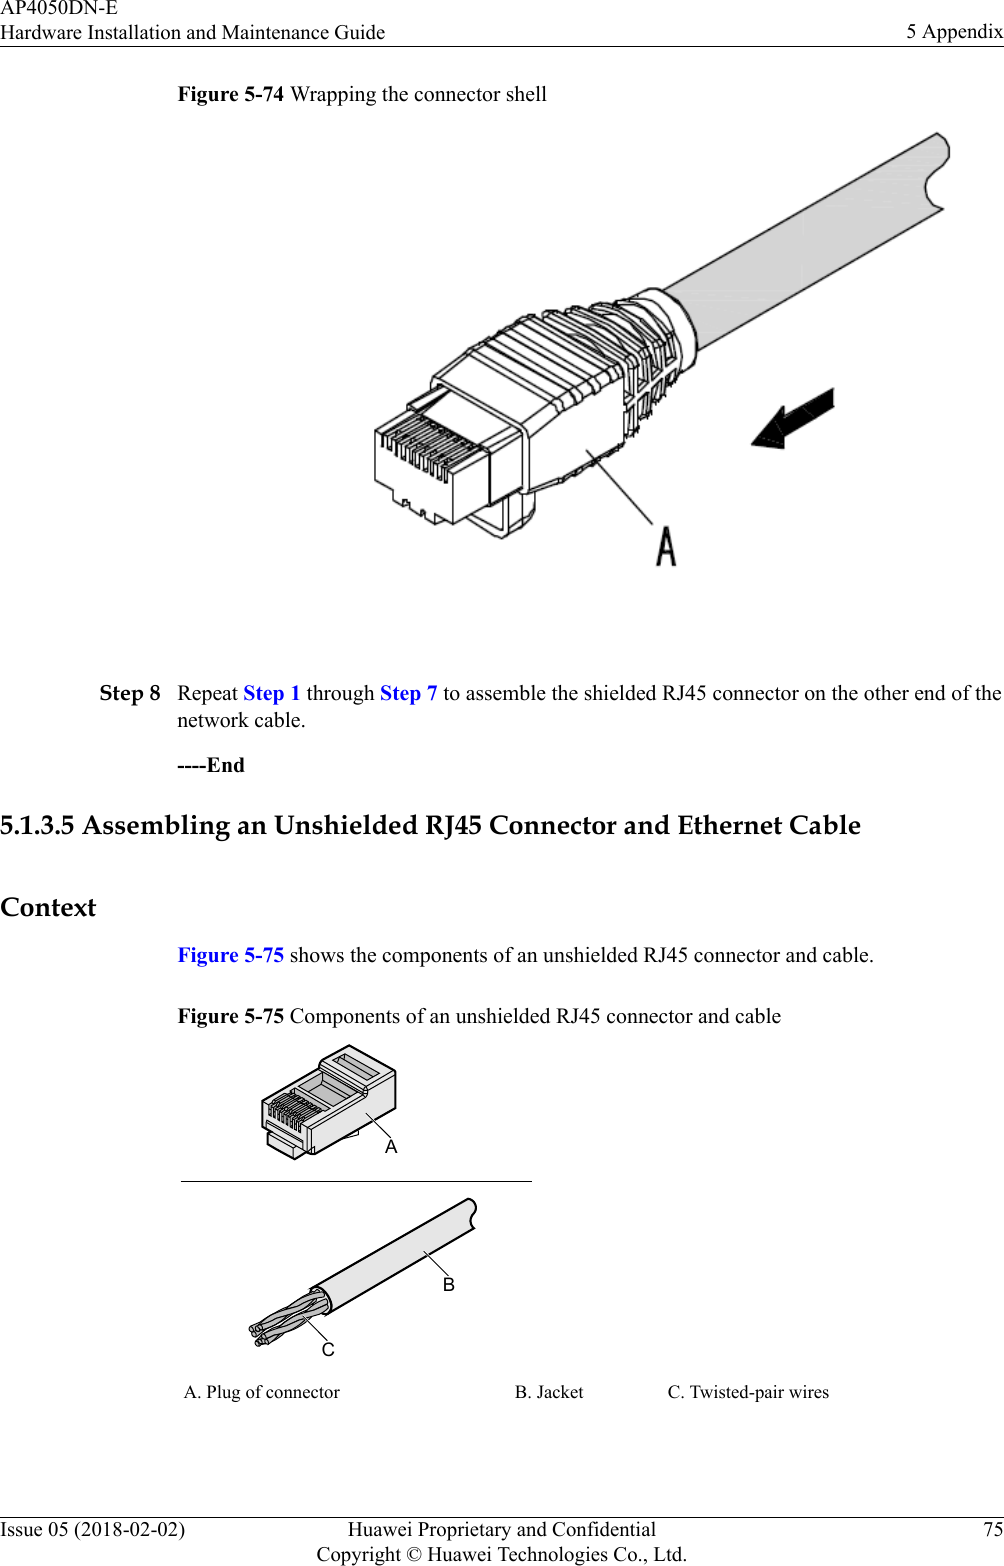 Huawei Technologies Ap4050dn E Wireless Lan Access Point User Manual Rj45 Wiring Diagram Wikipedia Figure 5 74 Wrapping The Connector Shell Step 8 Repeat 1 Through 7